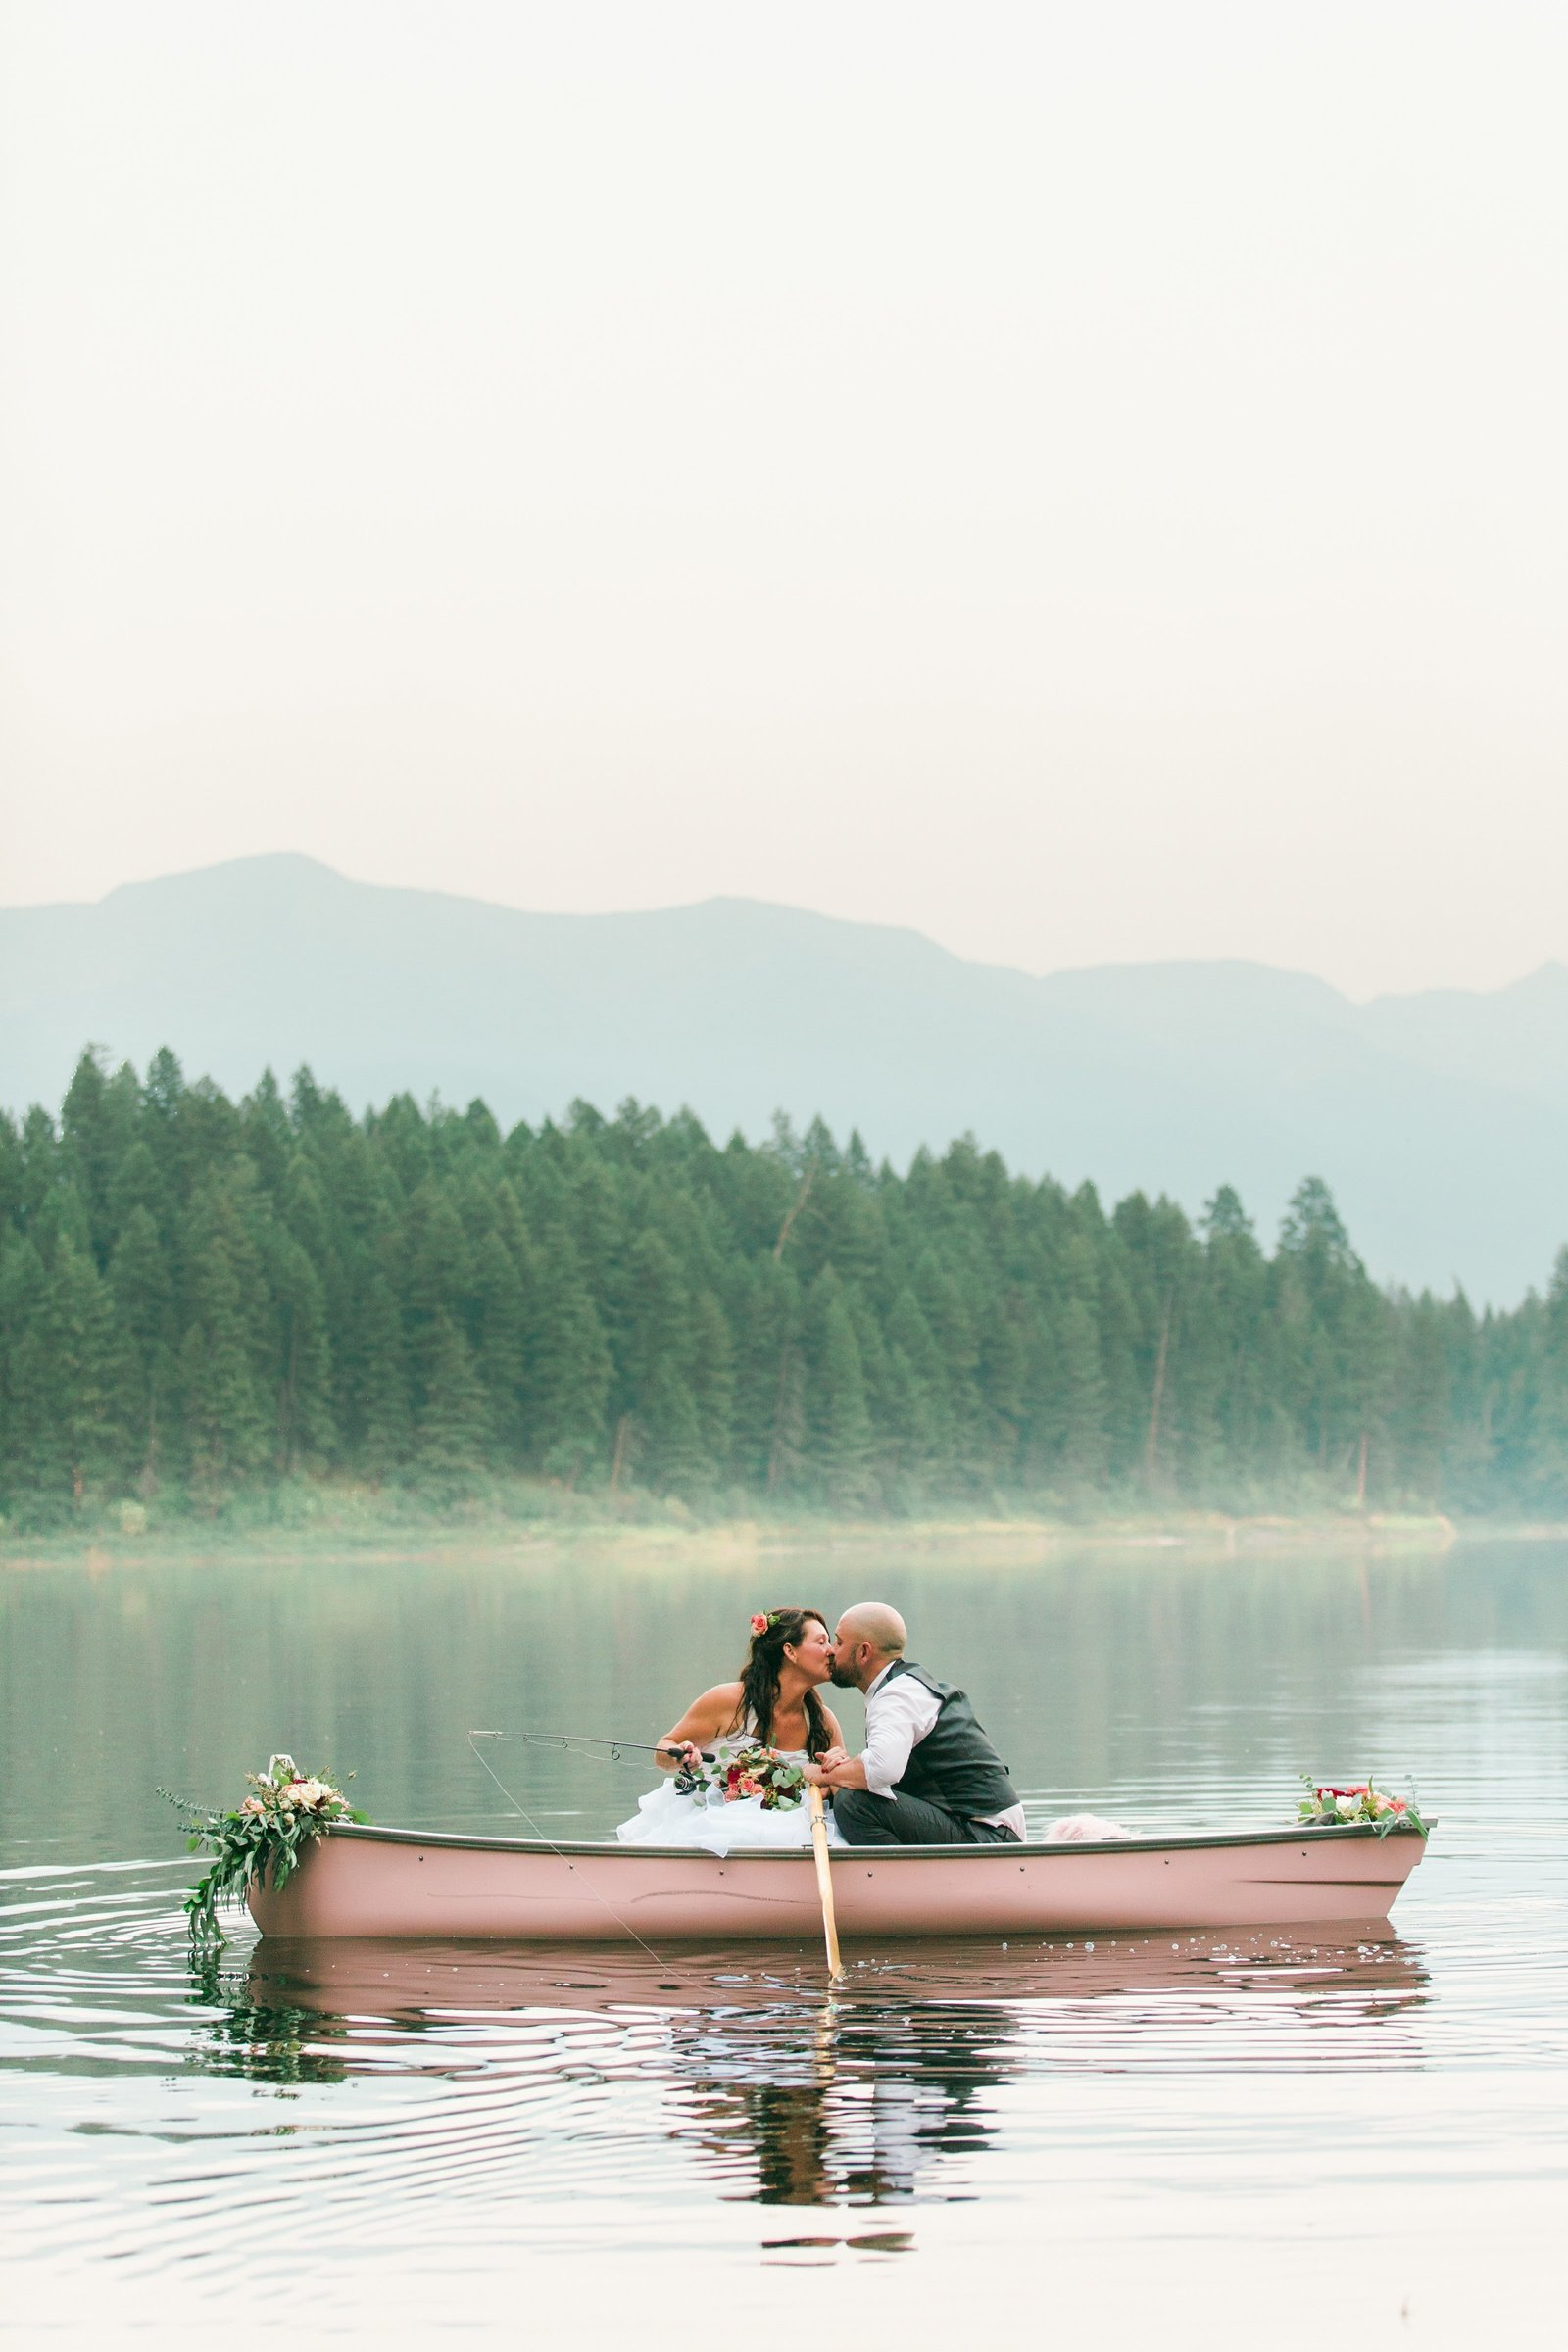 Wedding Photography, Kalispell Wedding Photographer, Montana Wedding Photographer, Kiralee Jones